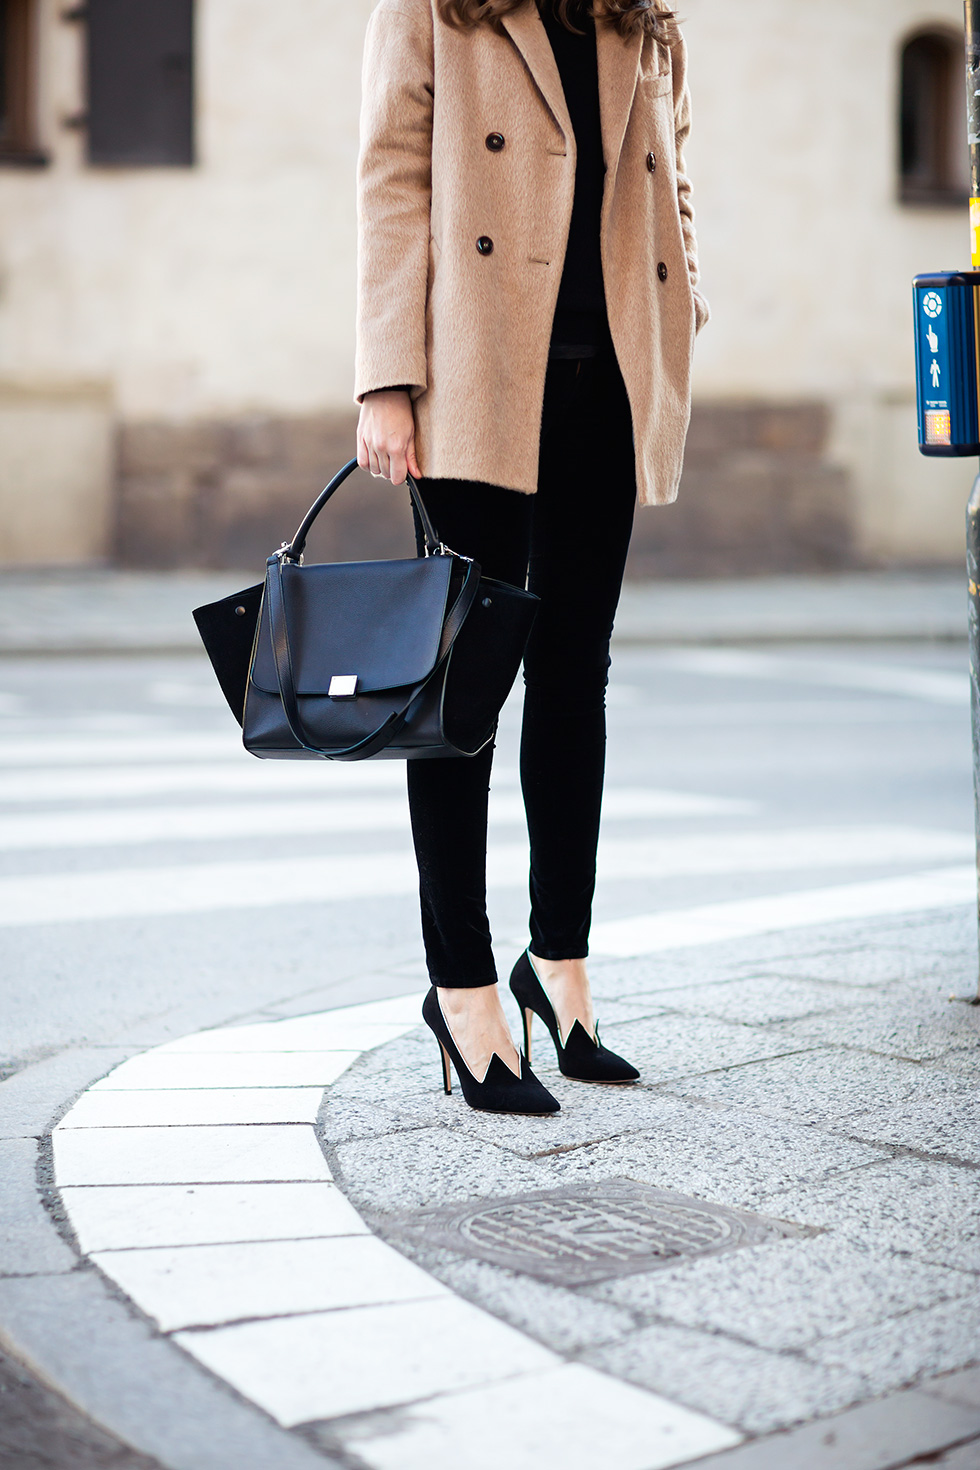 The Camel Coat... It Is A Classic - Just The Design